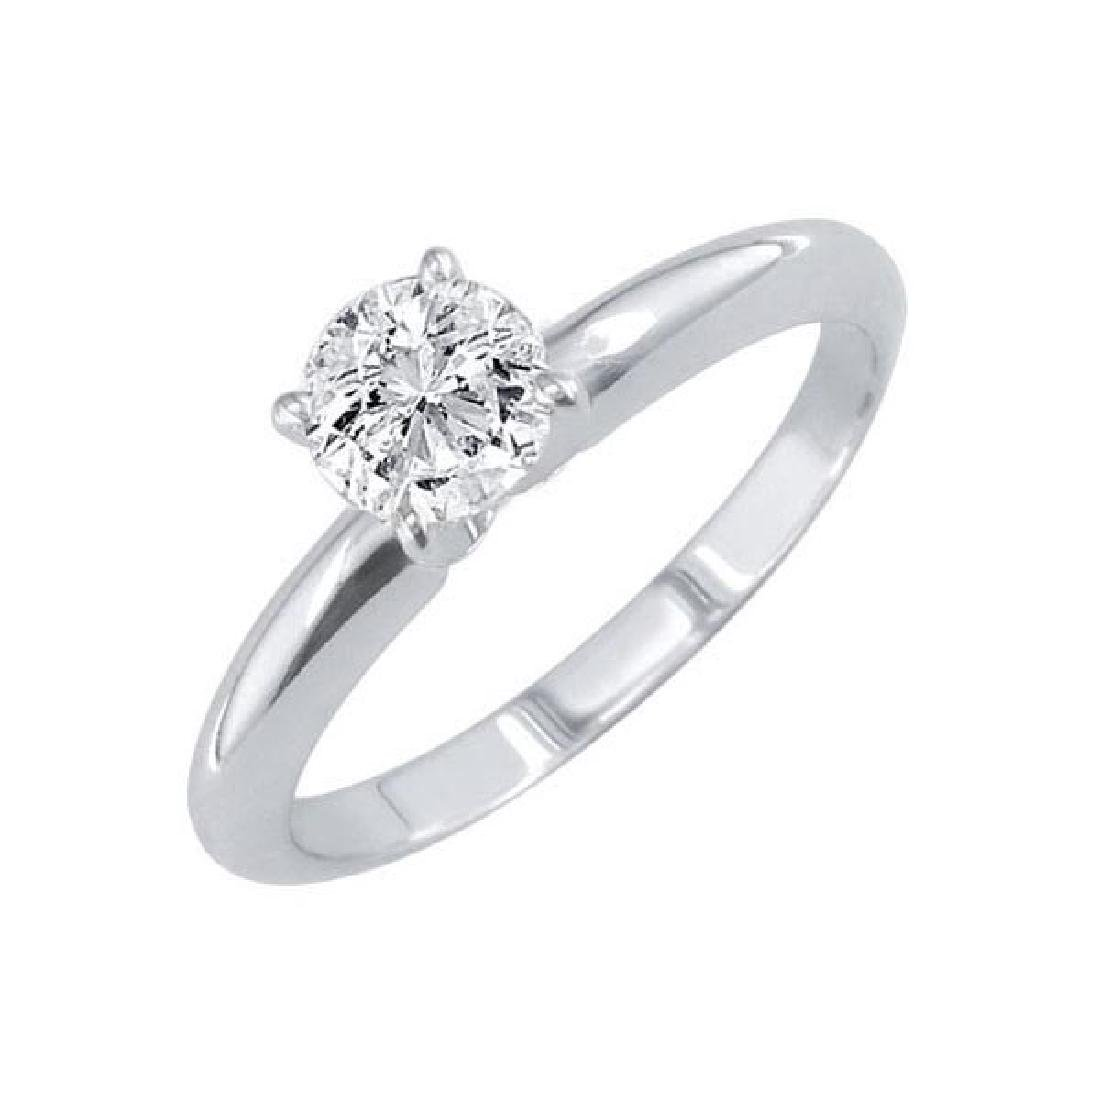 Certified 0.93 CTW Round Diamond Solitaire 14k Ring H/I